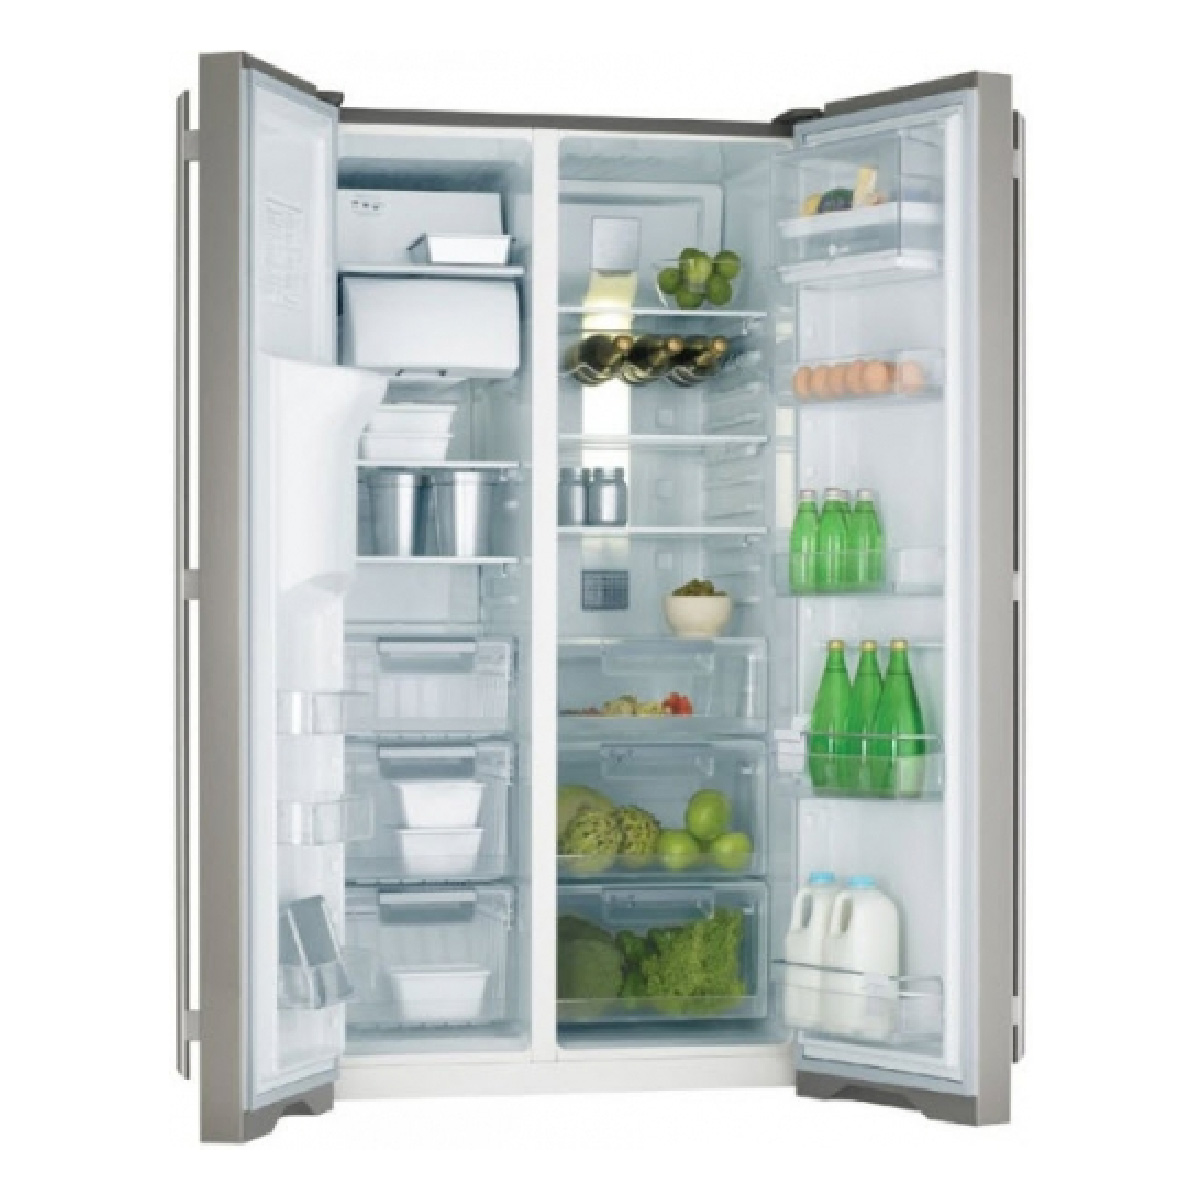 Electrolux ESE6077SG 600L Side by Side Fridge 23126